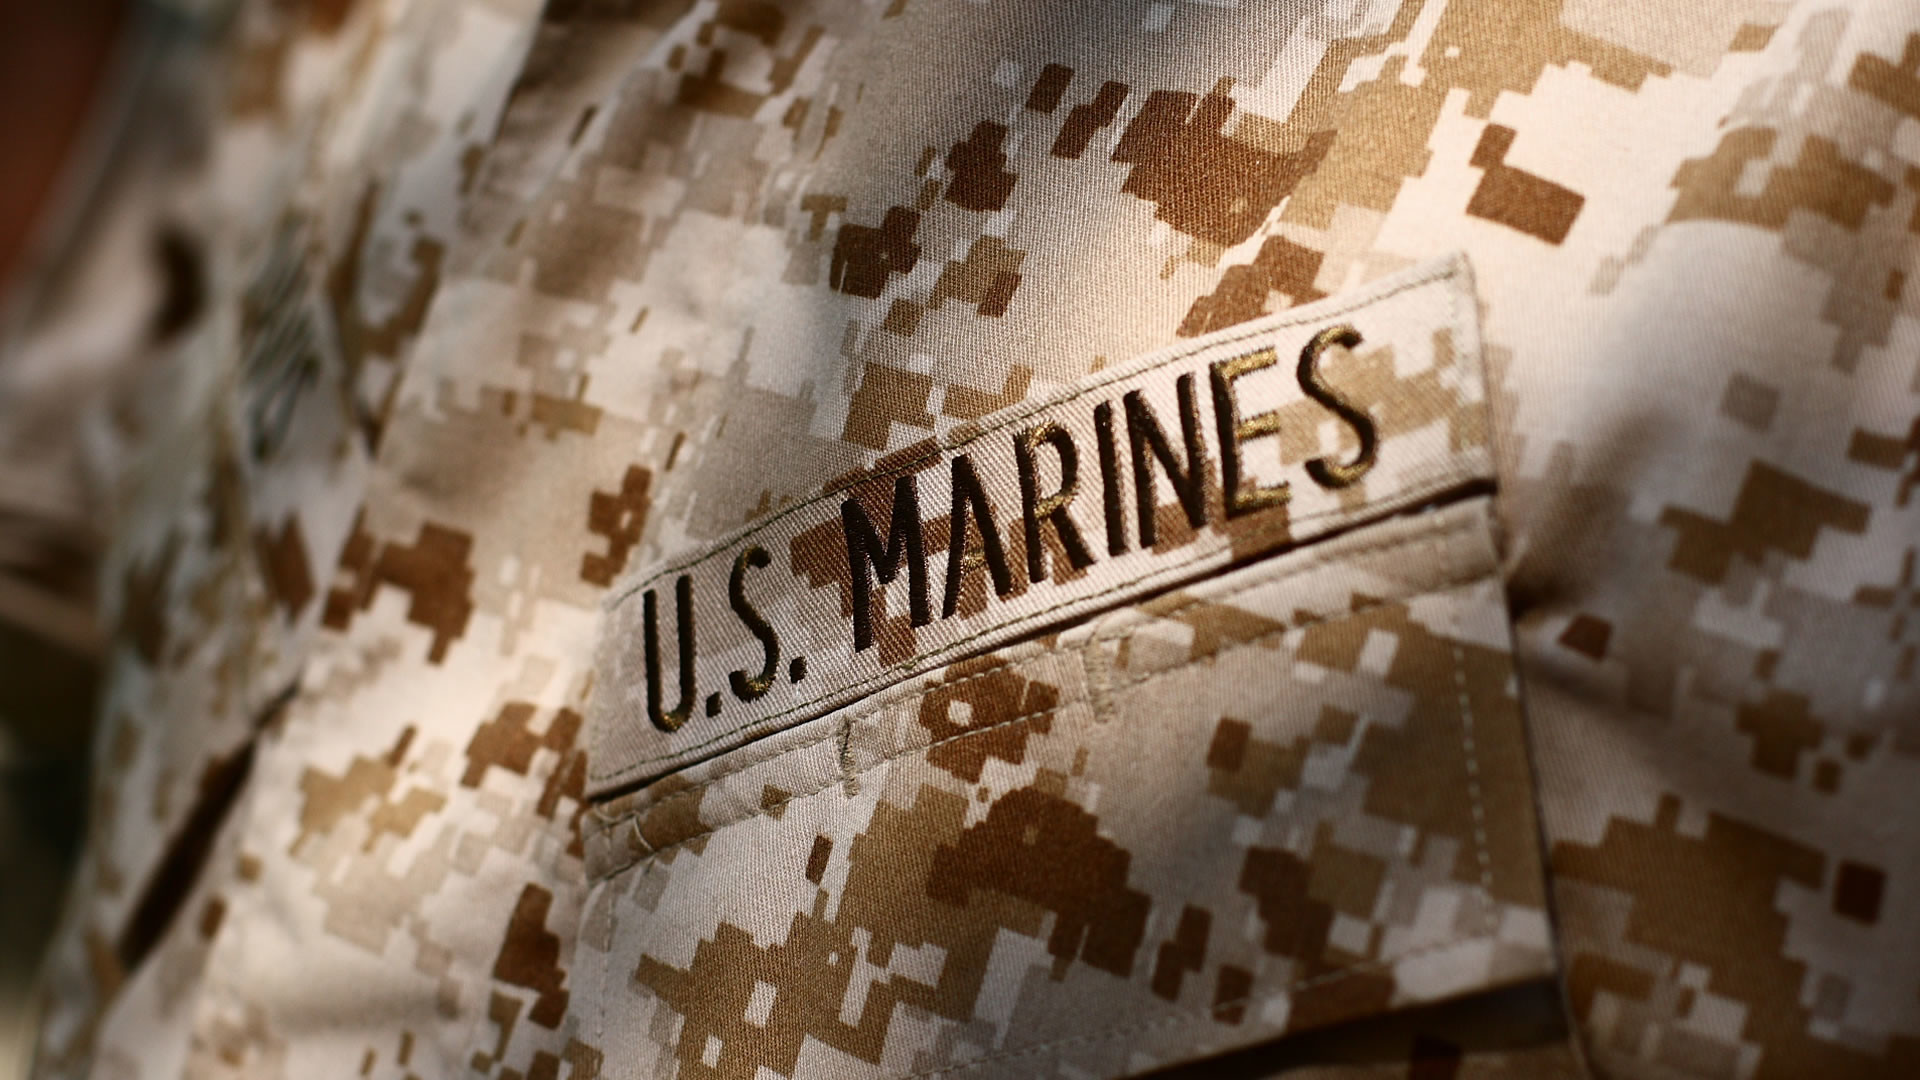 1920x1080 US Marines Uniform Patch